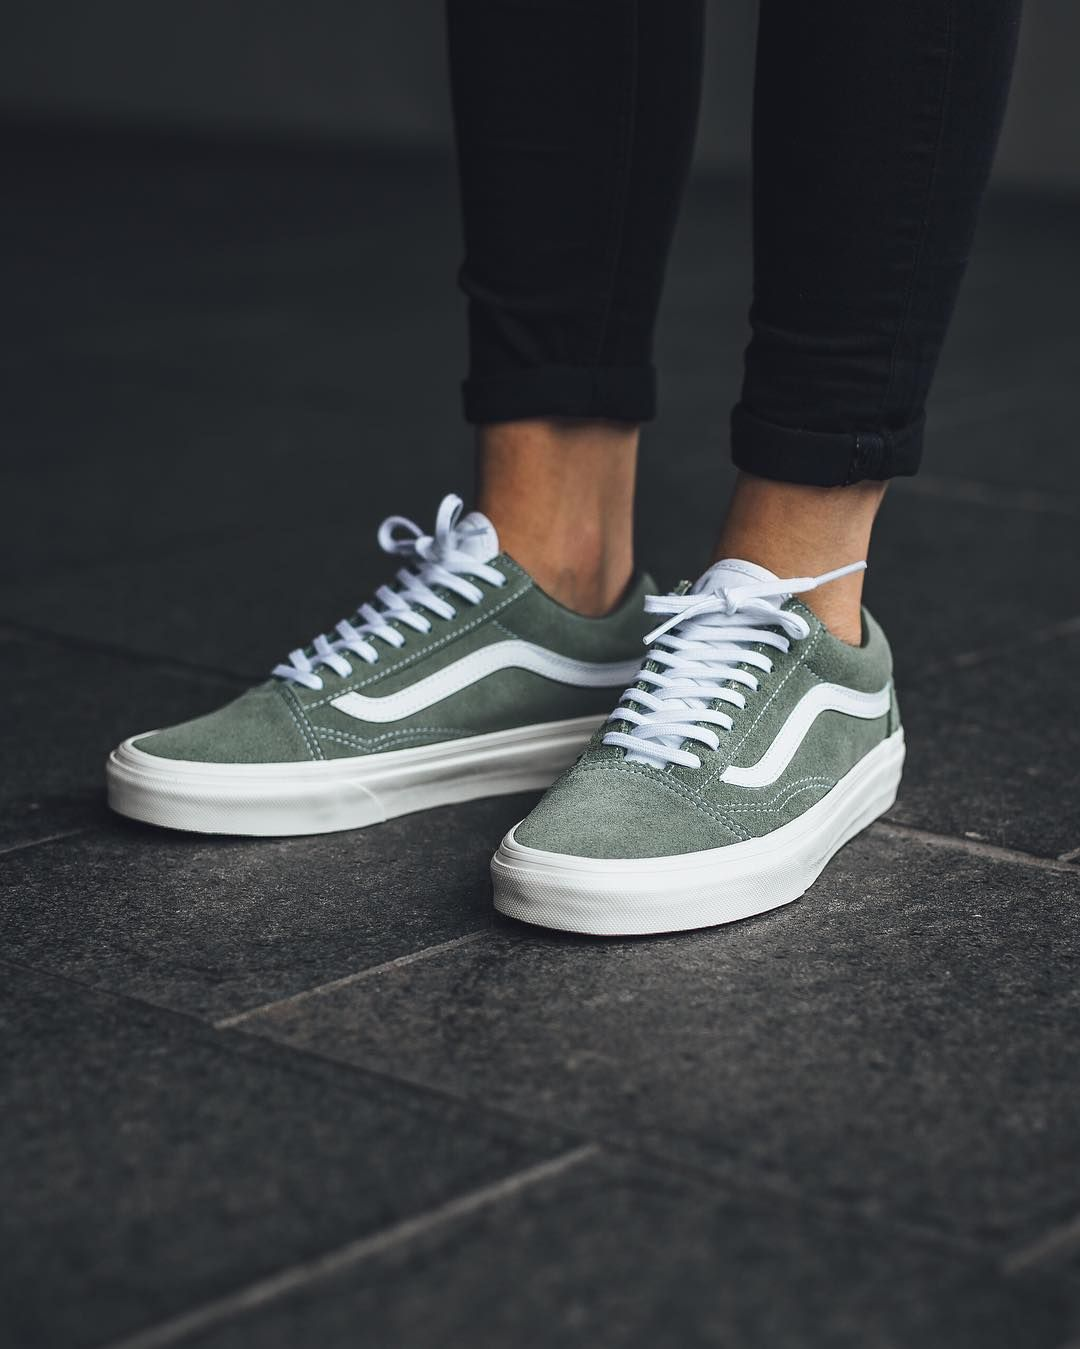 4bd34f5837 Women S Shoes European Size Conversion. VANS Old Skool